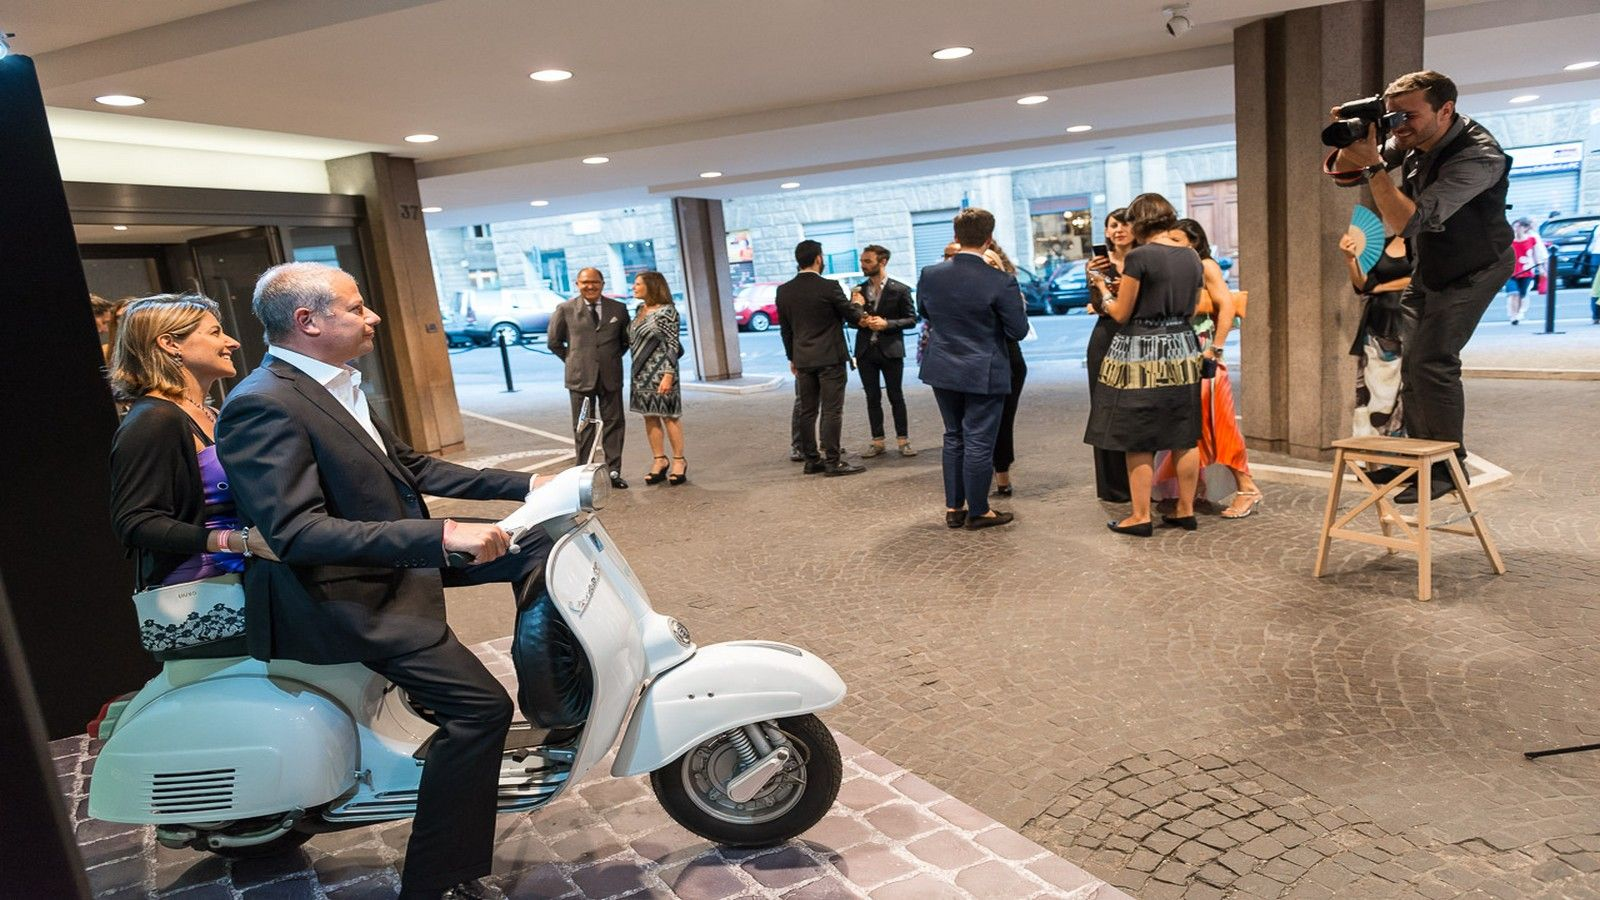 le meridien guests on vespa